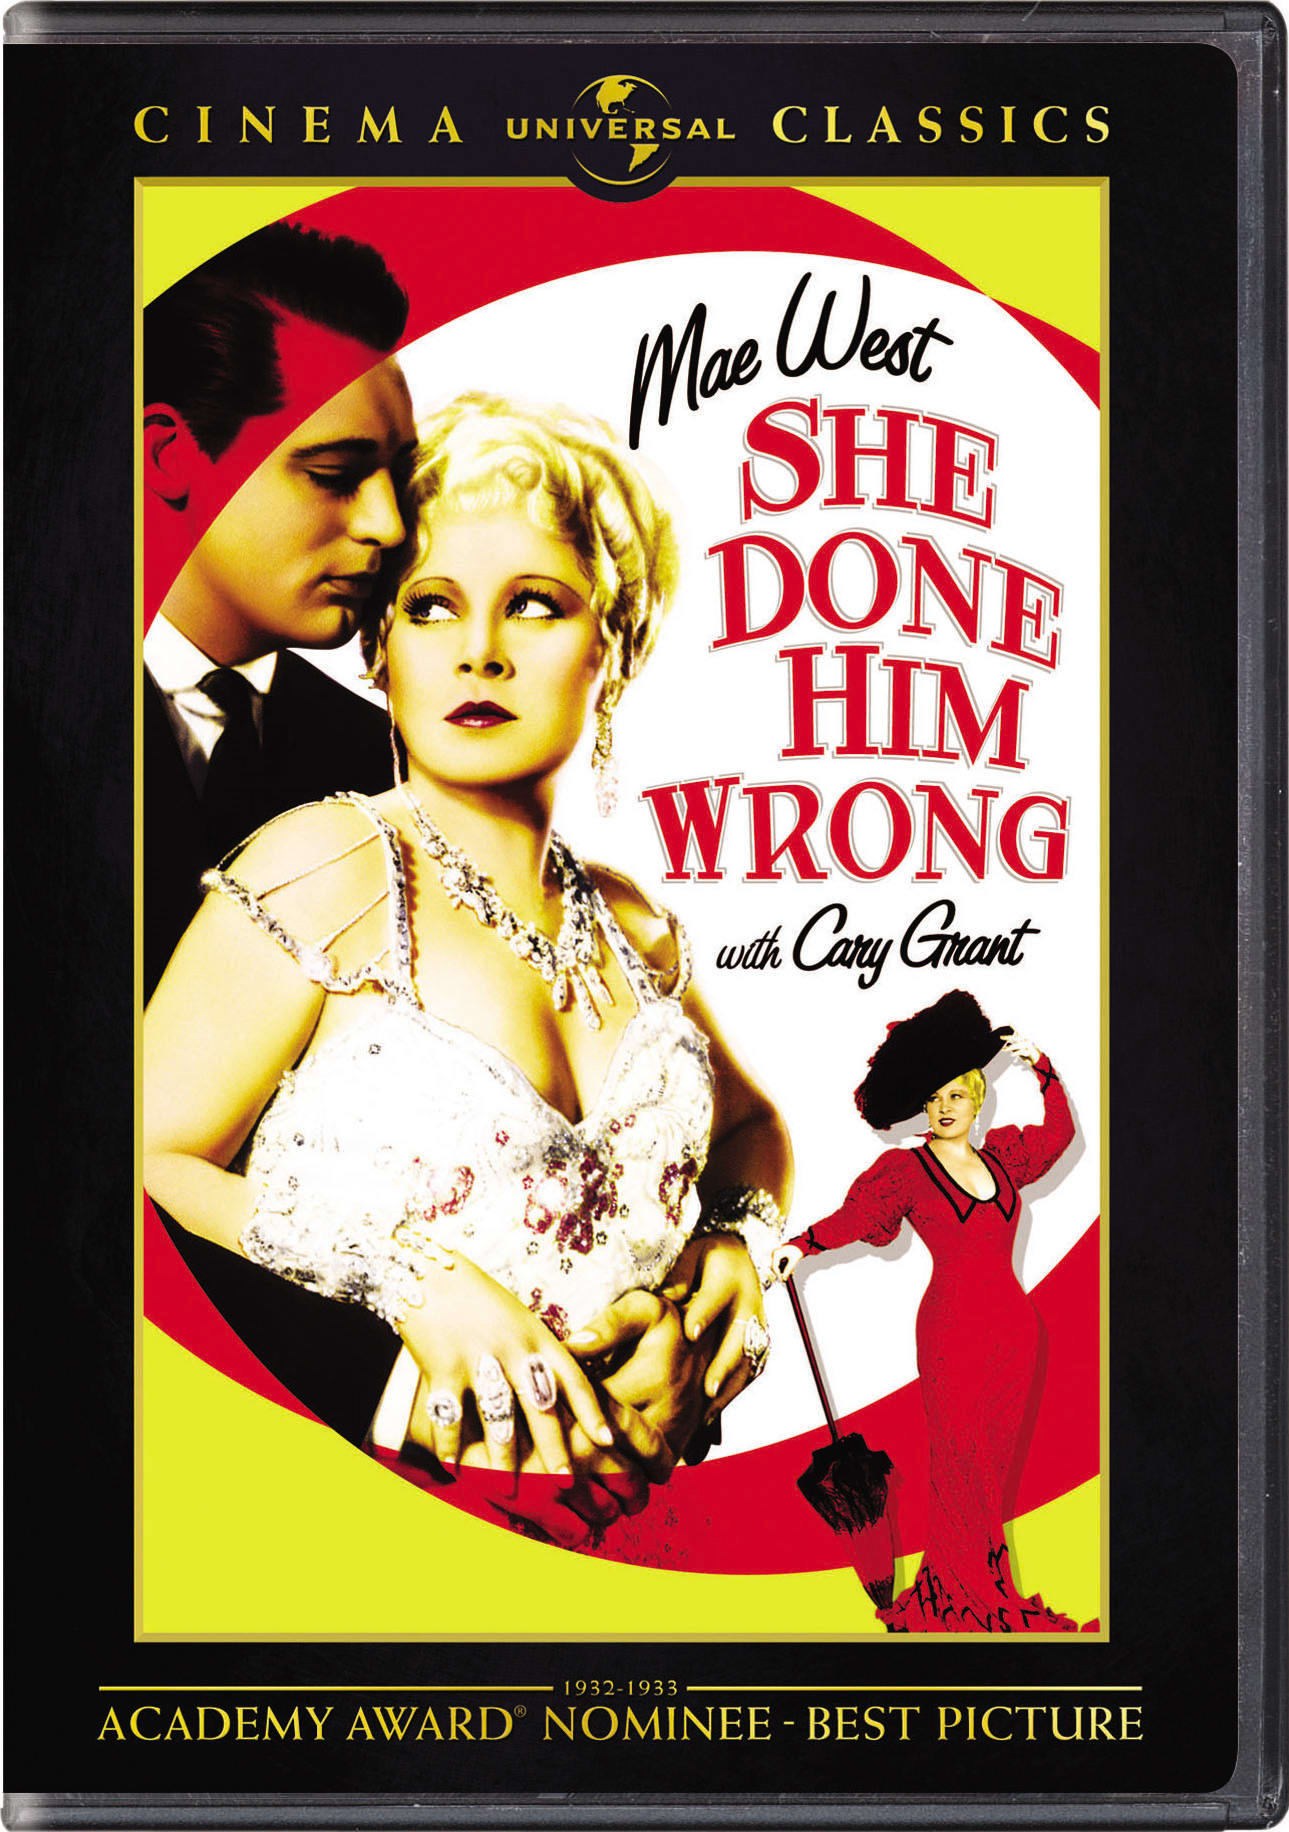 She Done Him Wrong [DVD]